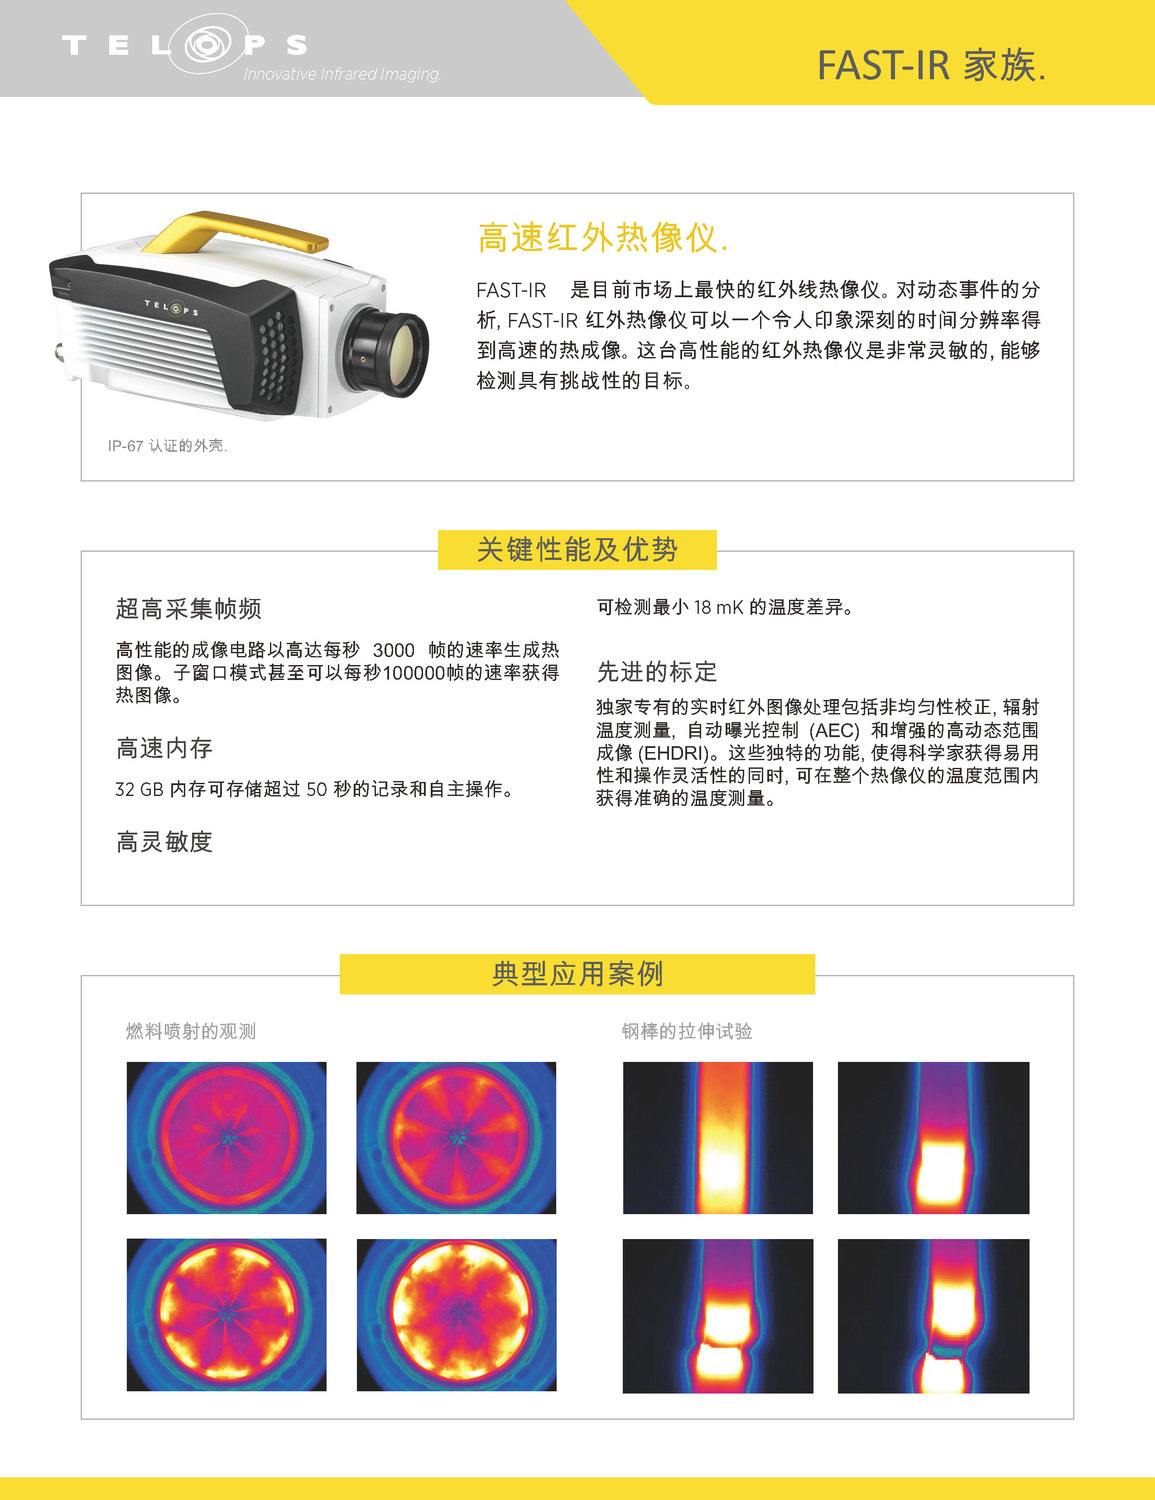 2019 FAST-IR Brochure - CHINA_页面_1.jpg